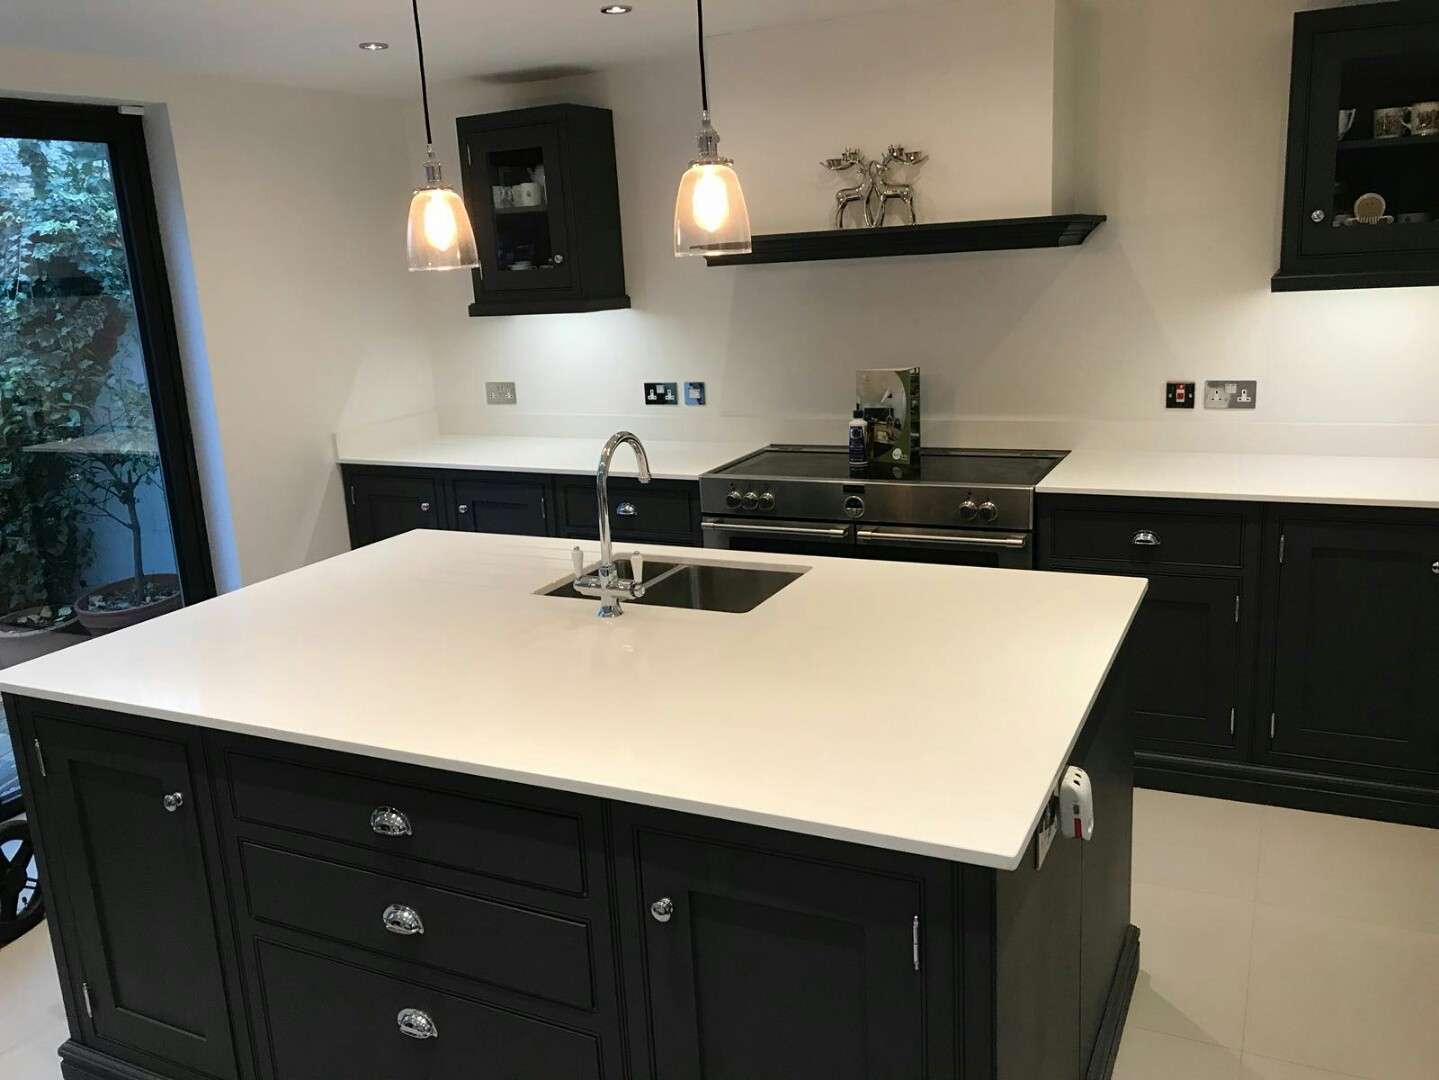 Kitchen of the week… Located in Woodford, Essex, showcasing the Bianco Puro